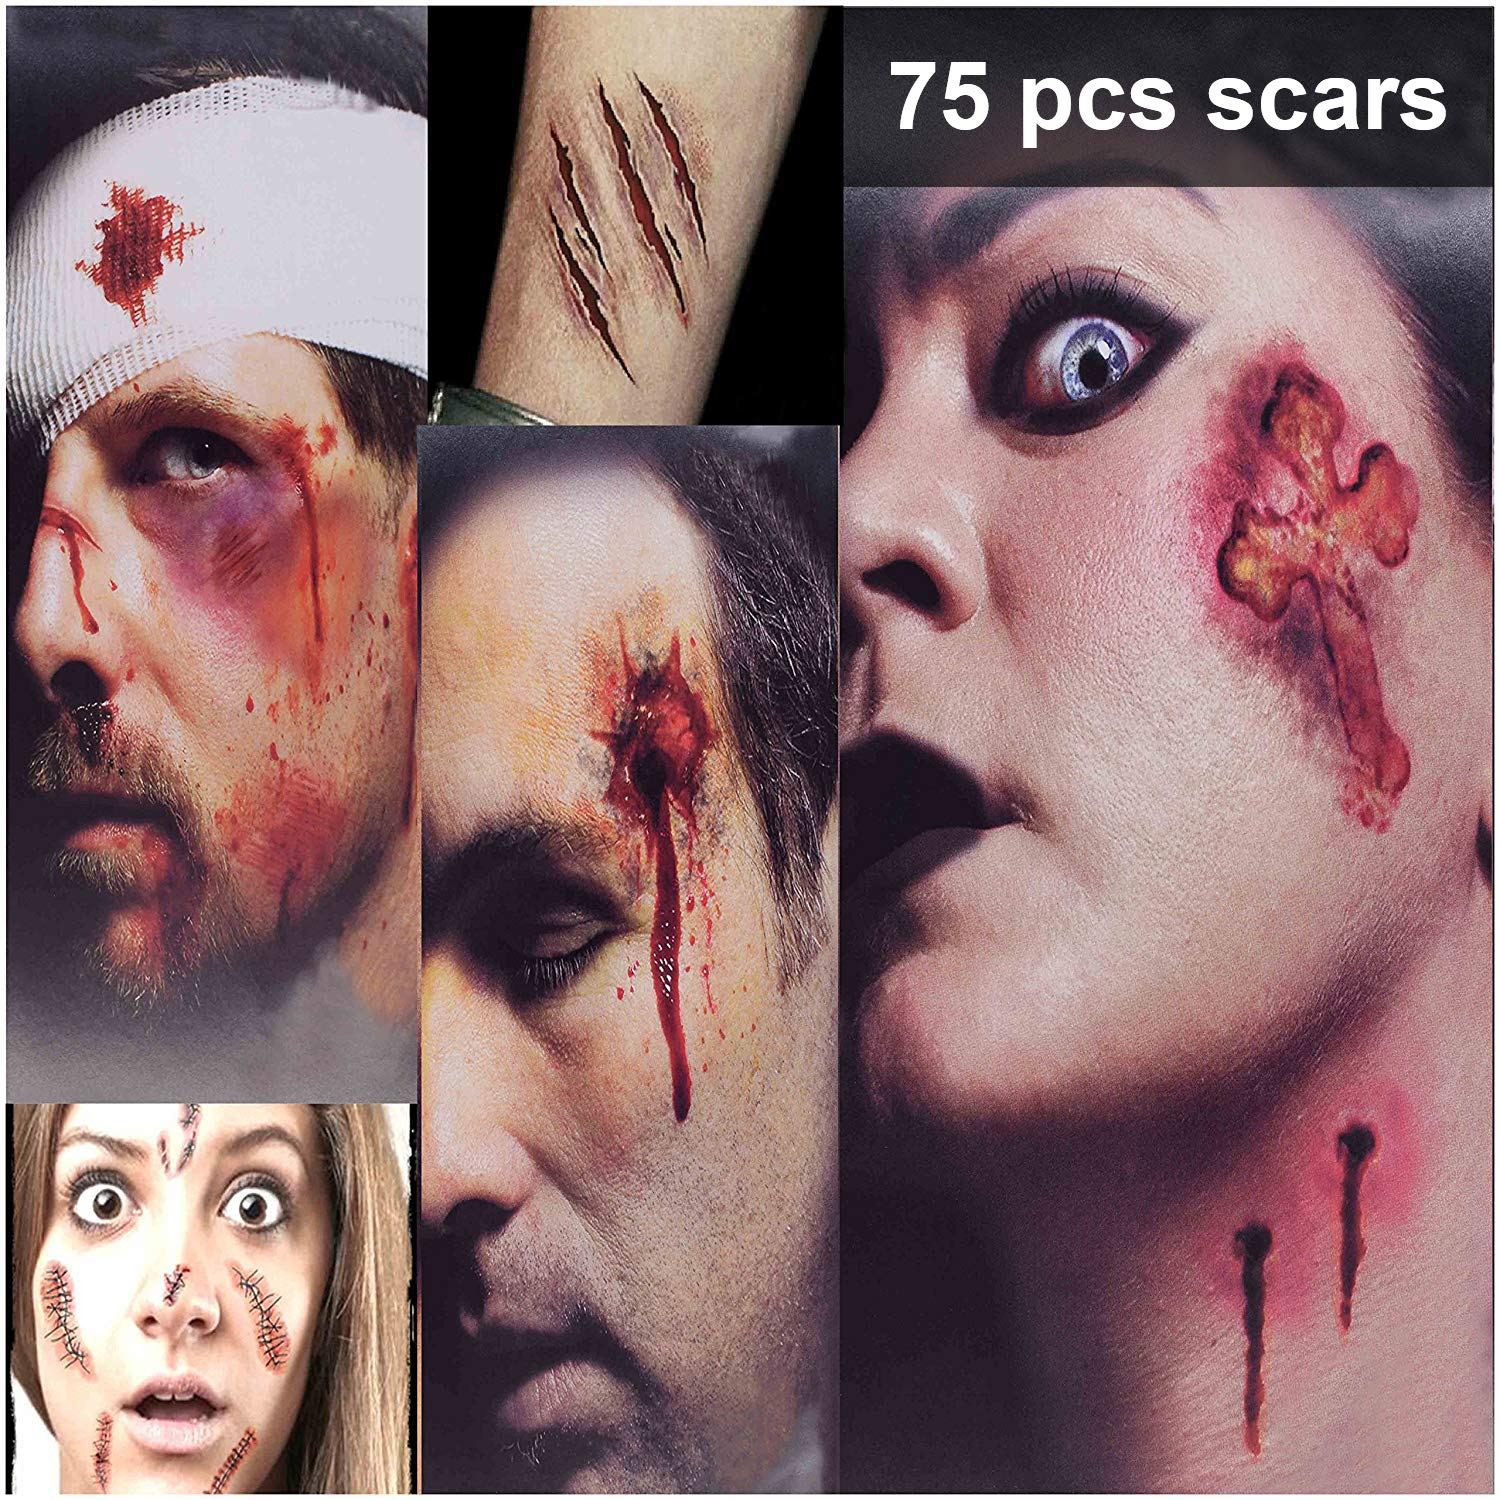 Zombie Makeup Tattoos  Halloween Zombie Makeup Kit  Scar Tattoos  3 Large  6 Small  Pack Vampire Bite Tattoo  Fake Scars  Halloween Makeup Kit  Waterproof Fake Blood  Safe Zombie Makeup Kit for Kids